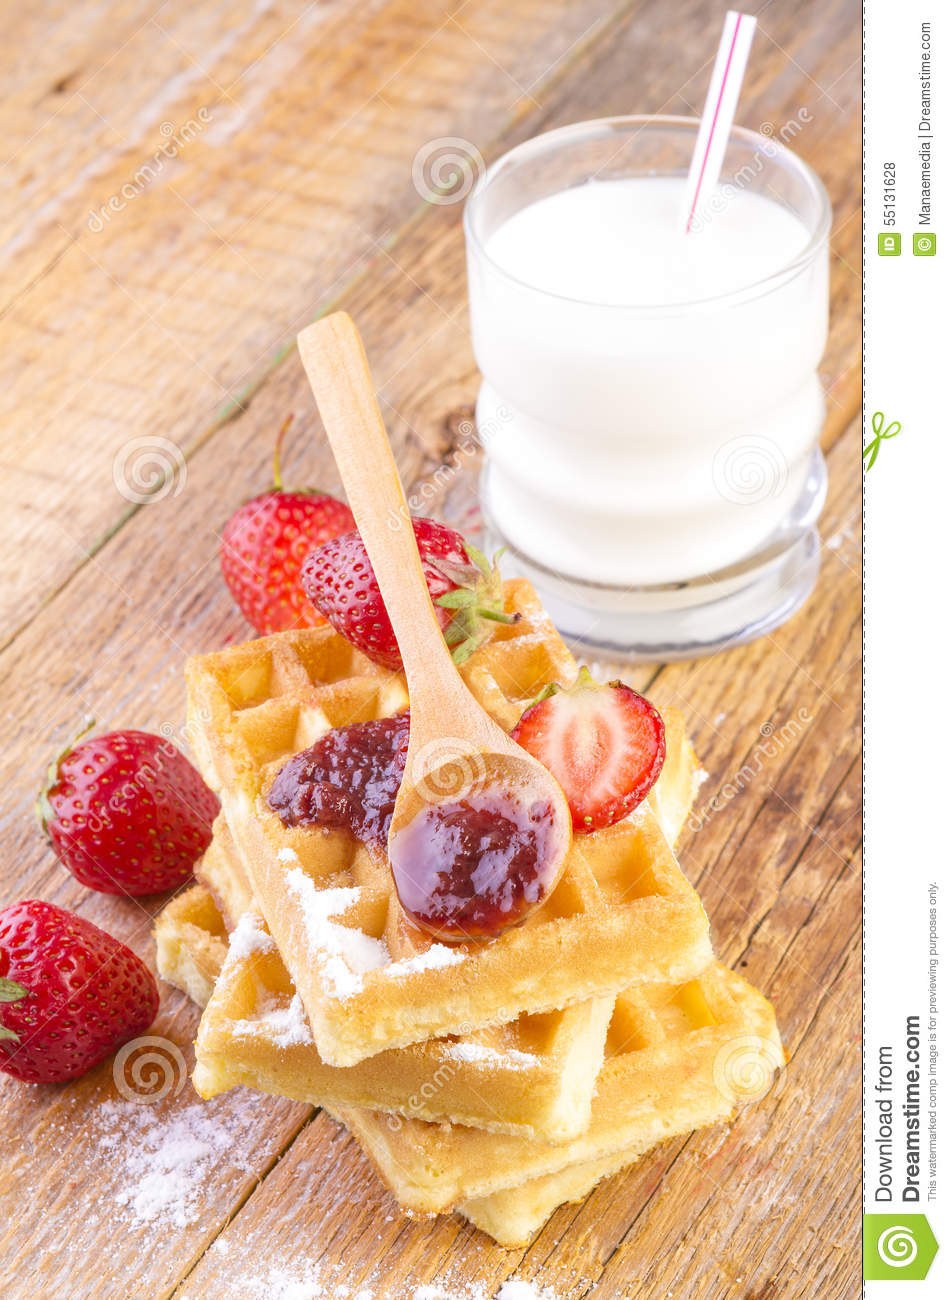 how to make strawberry syrup for waffles